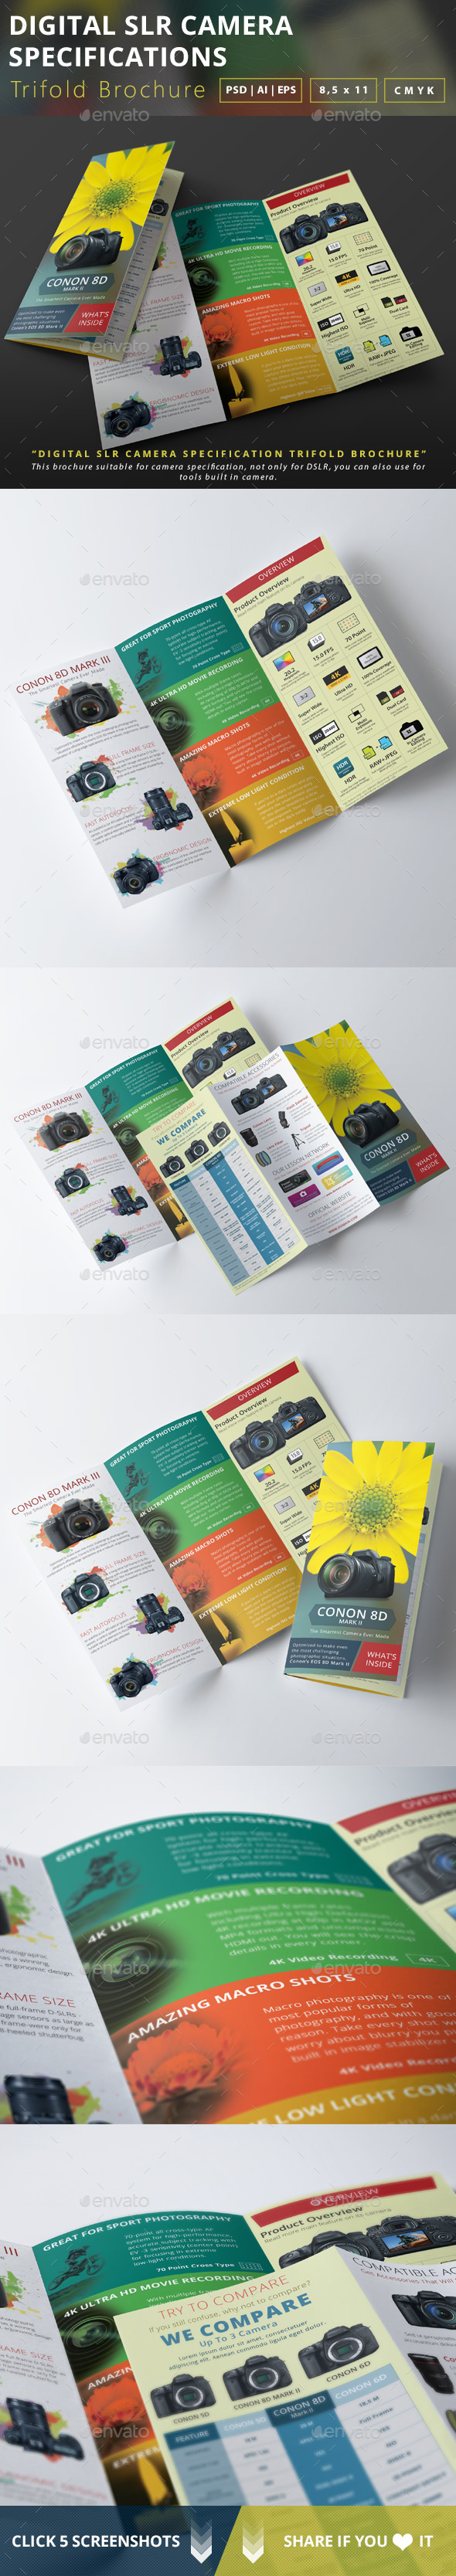 Digital Slr Camera Specifications Trifold Brochure